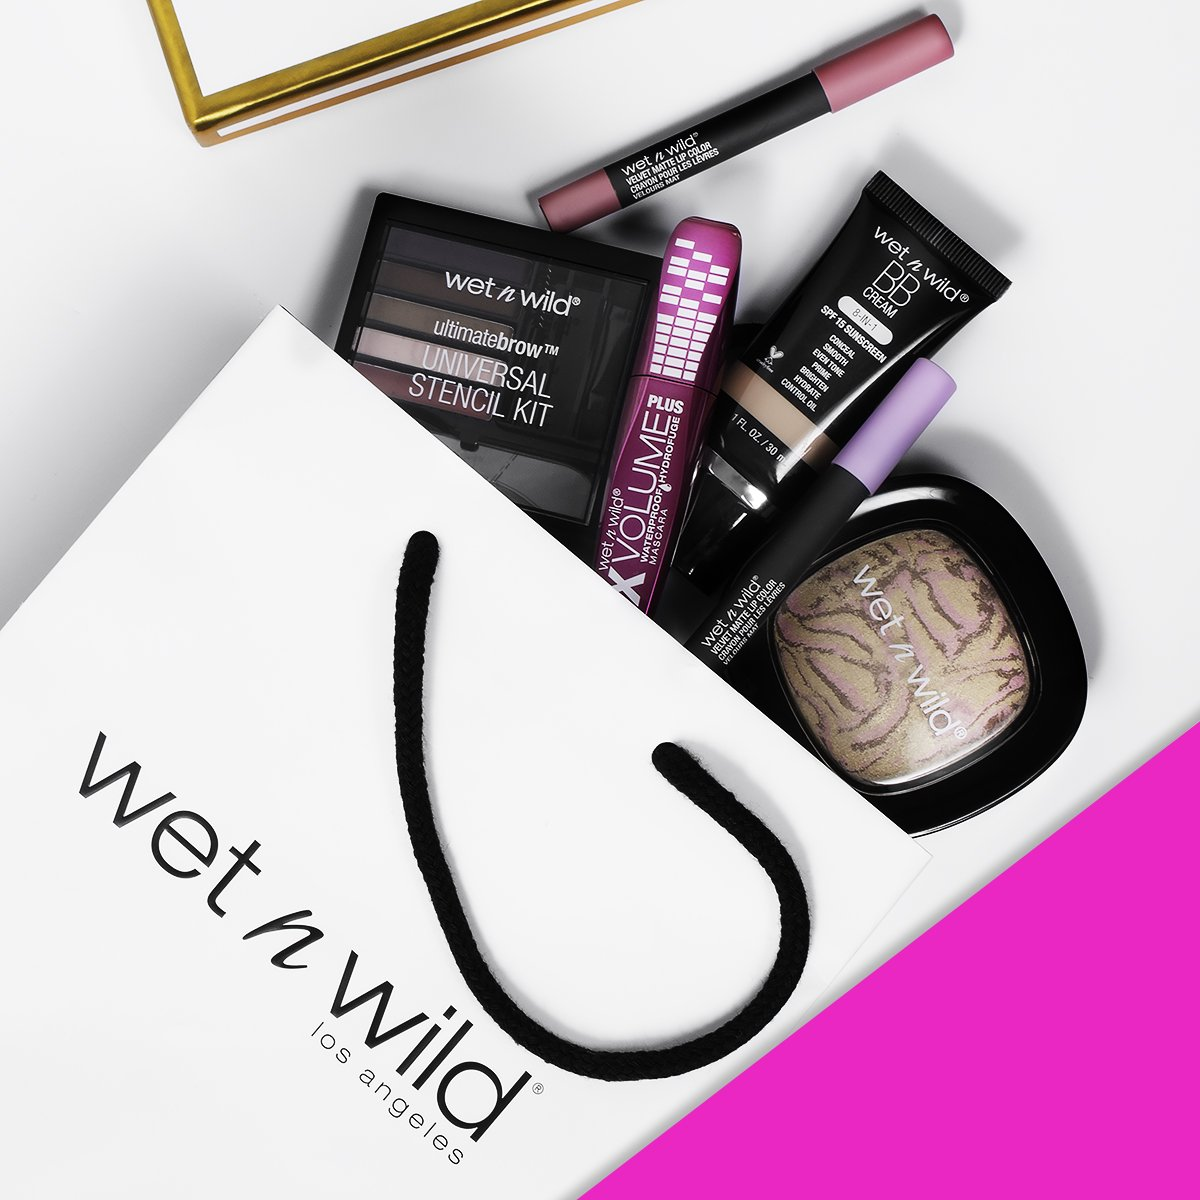 Wet N Wild Beauty On Twitter